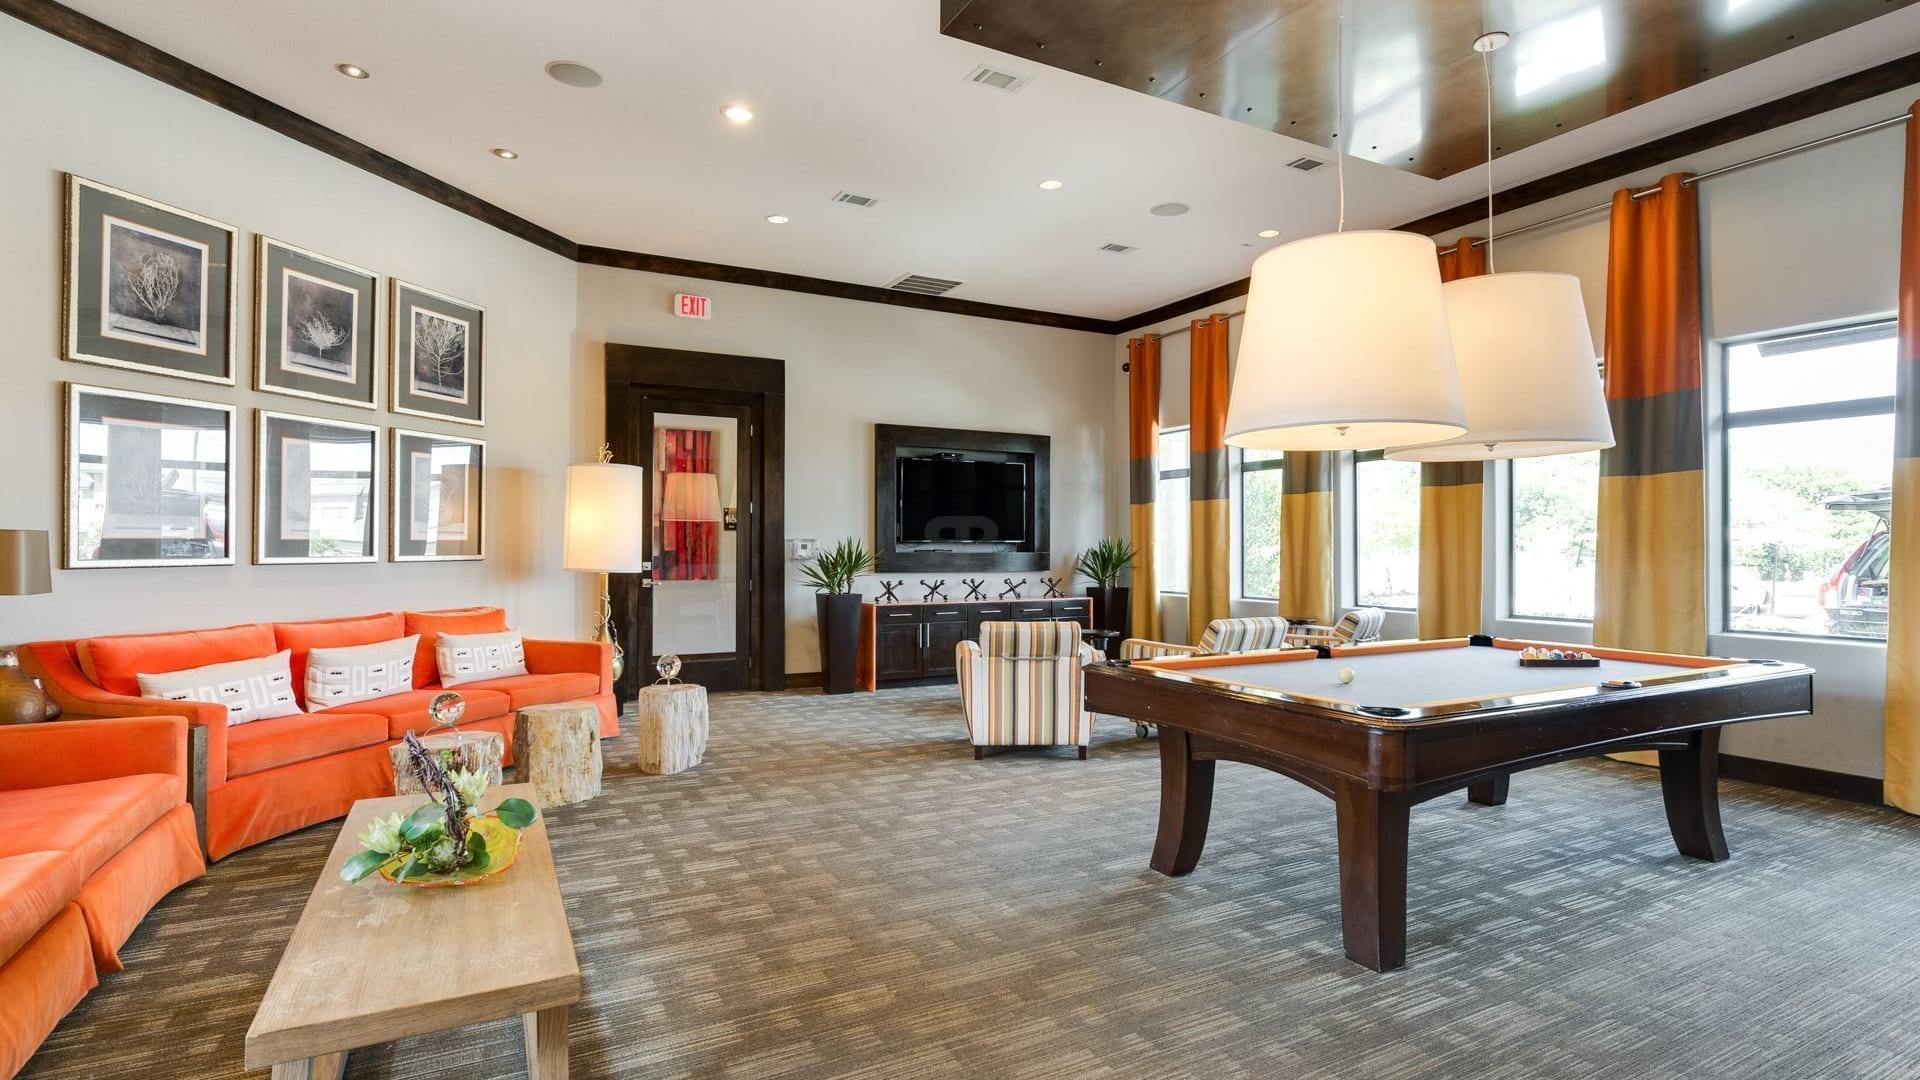 Resident lounge with pool table at Camino Real apartments